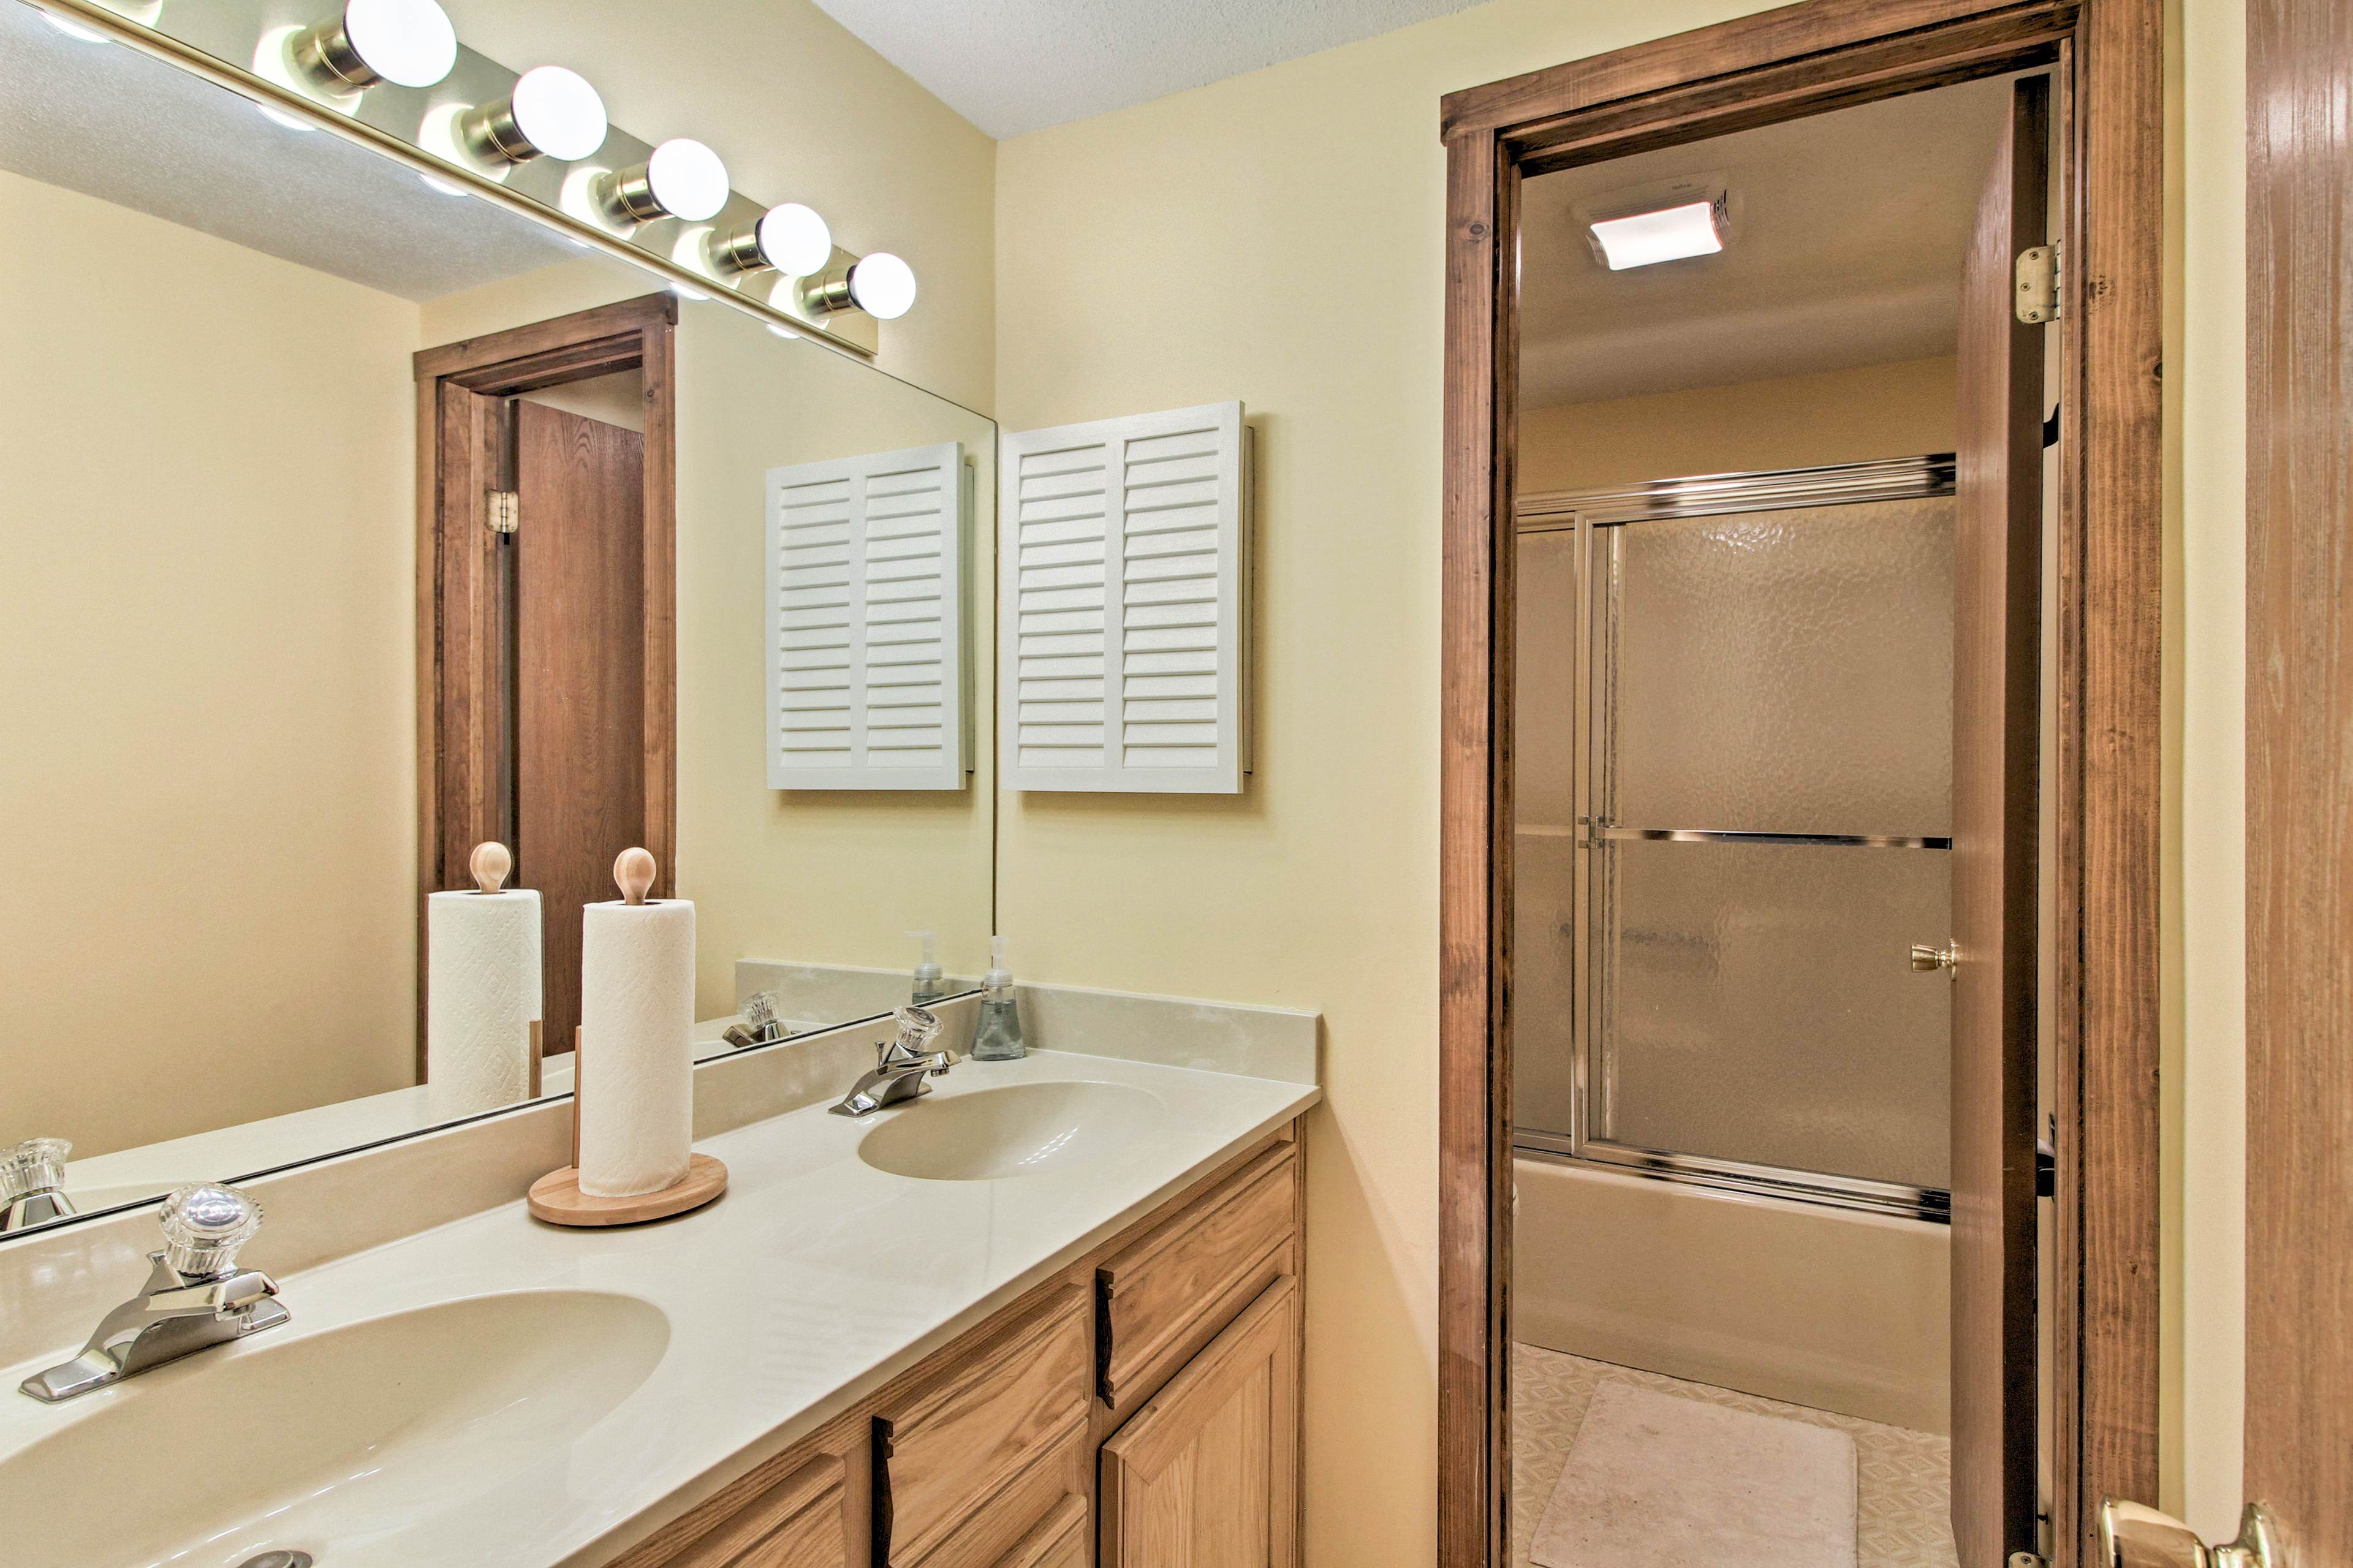 The double vanity and separate shower make it easy to get ready!